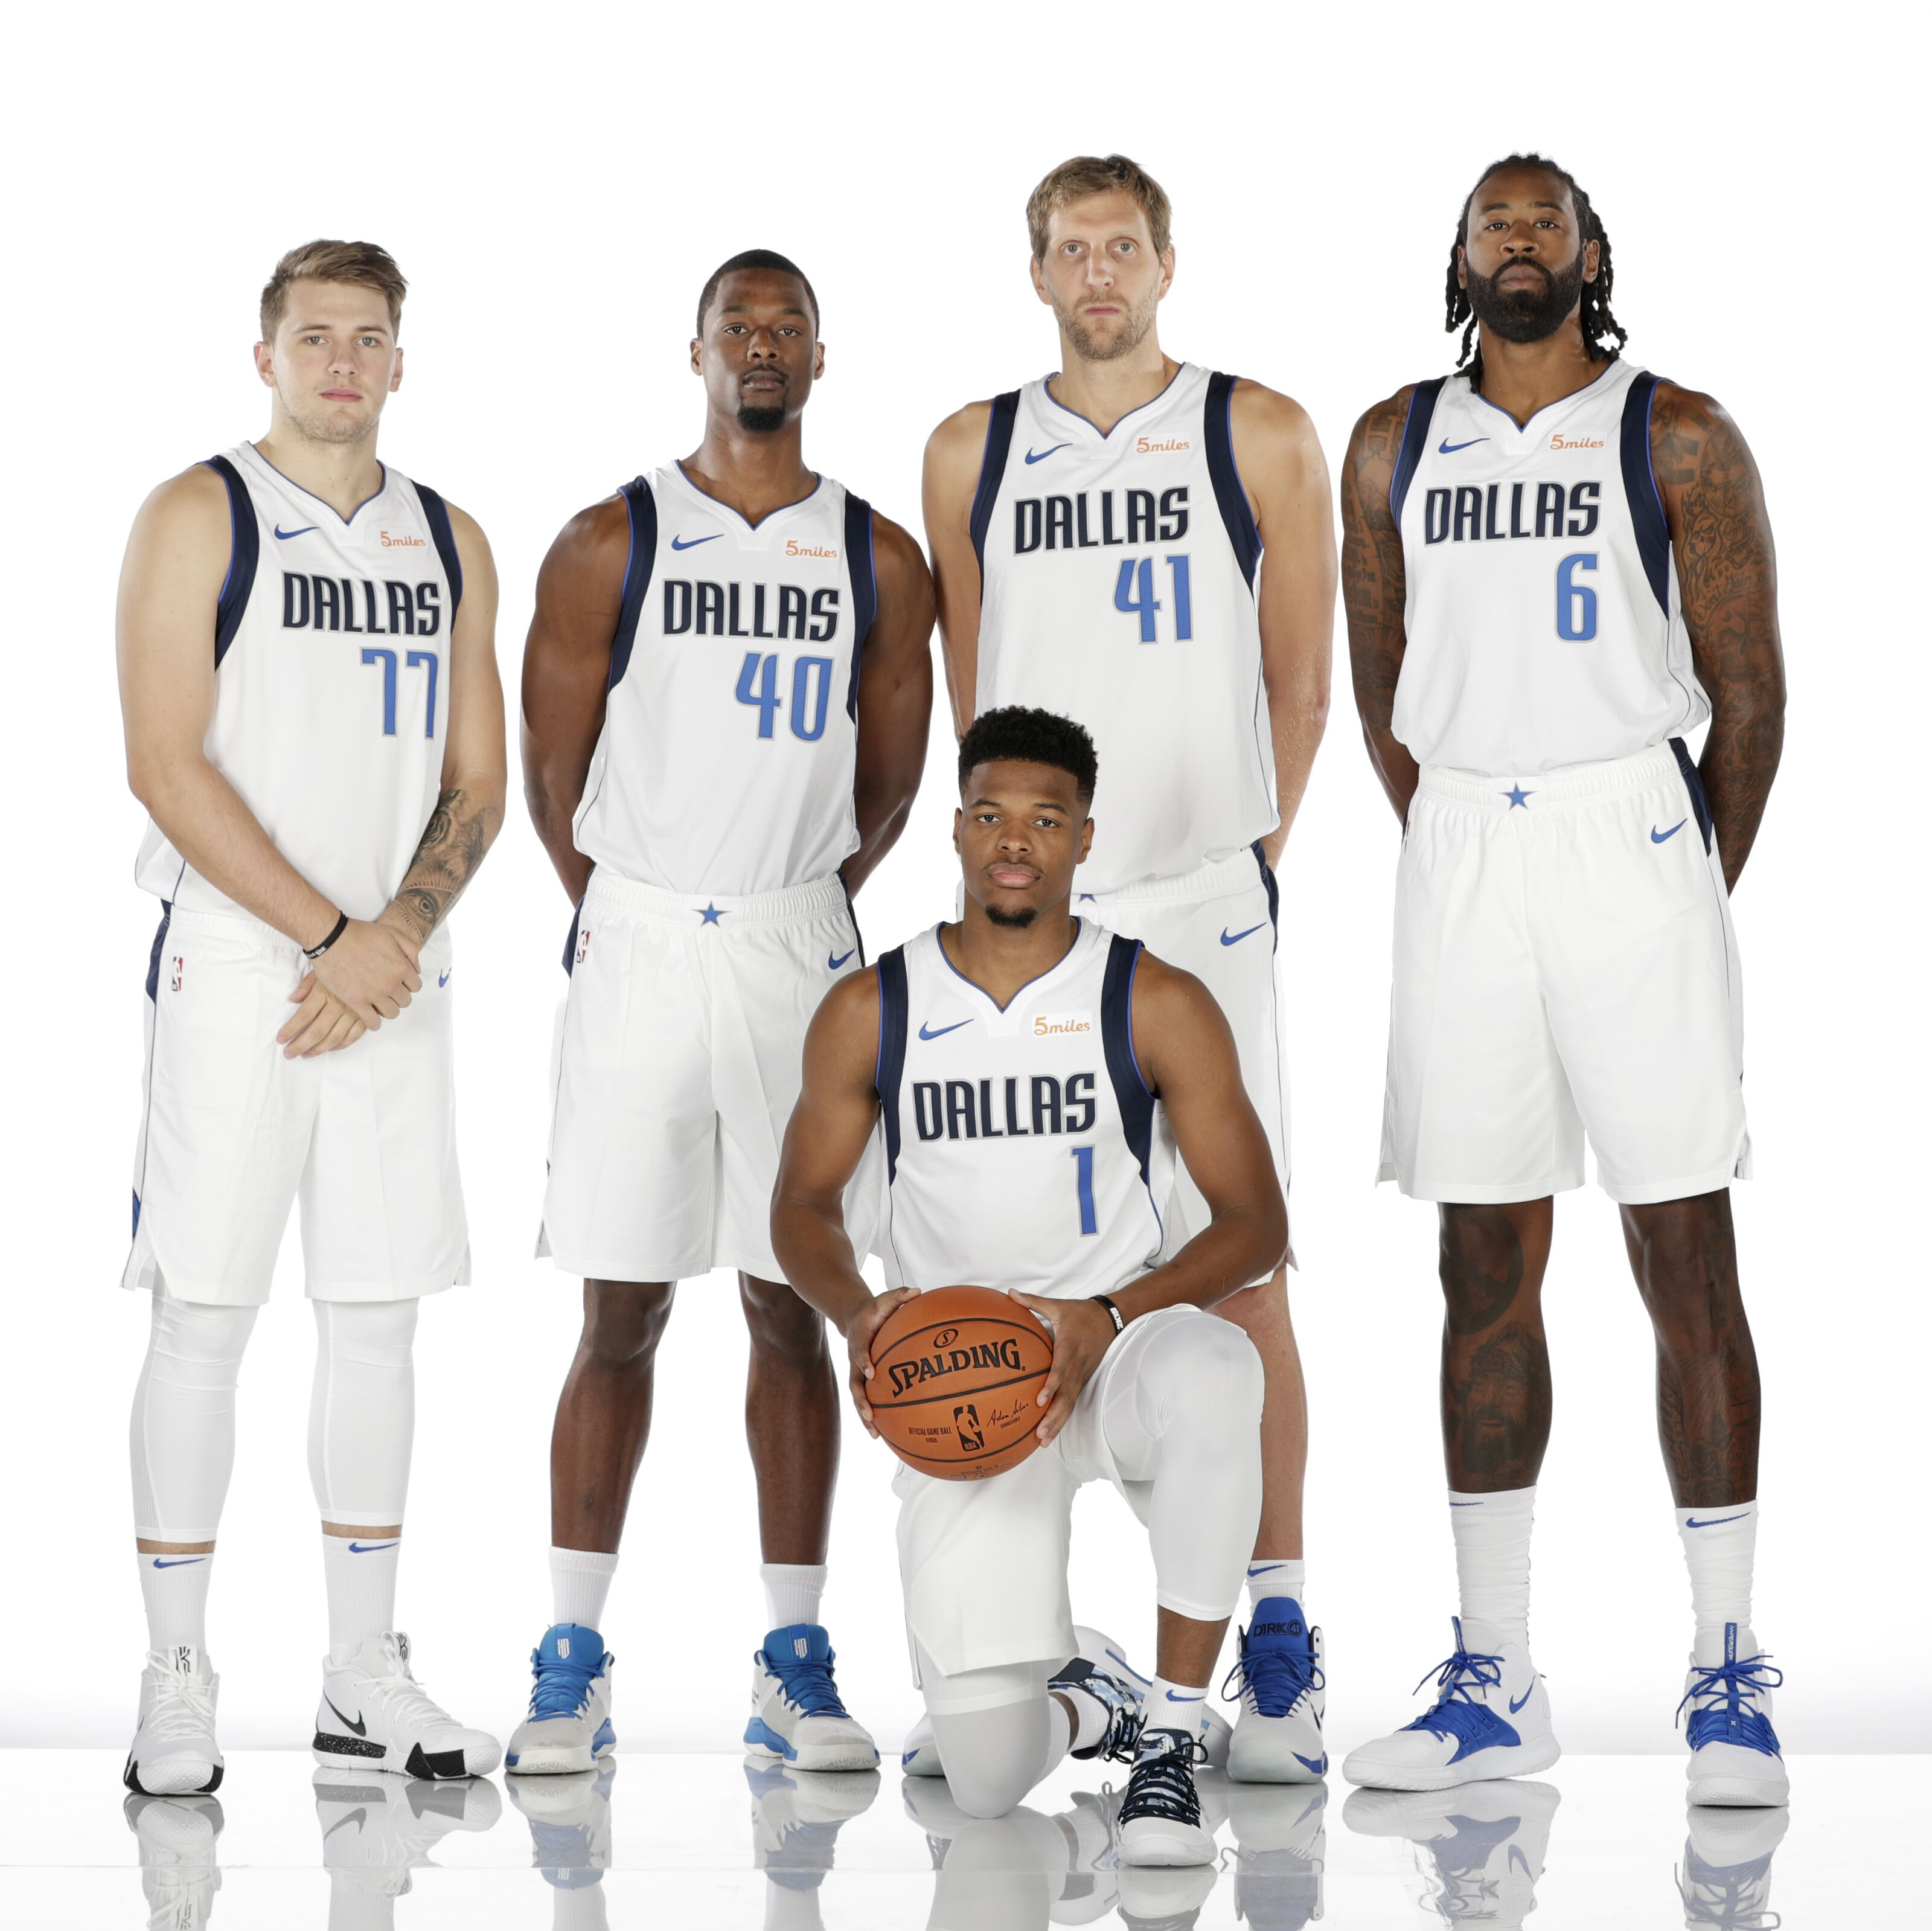 Quakertown Blazers 2018 Schedule: Dallas Mavericks: 3 Bold Predictions For 2018-19 NBA